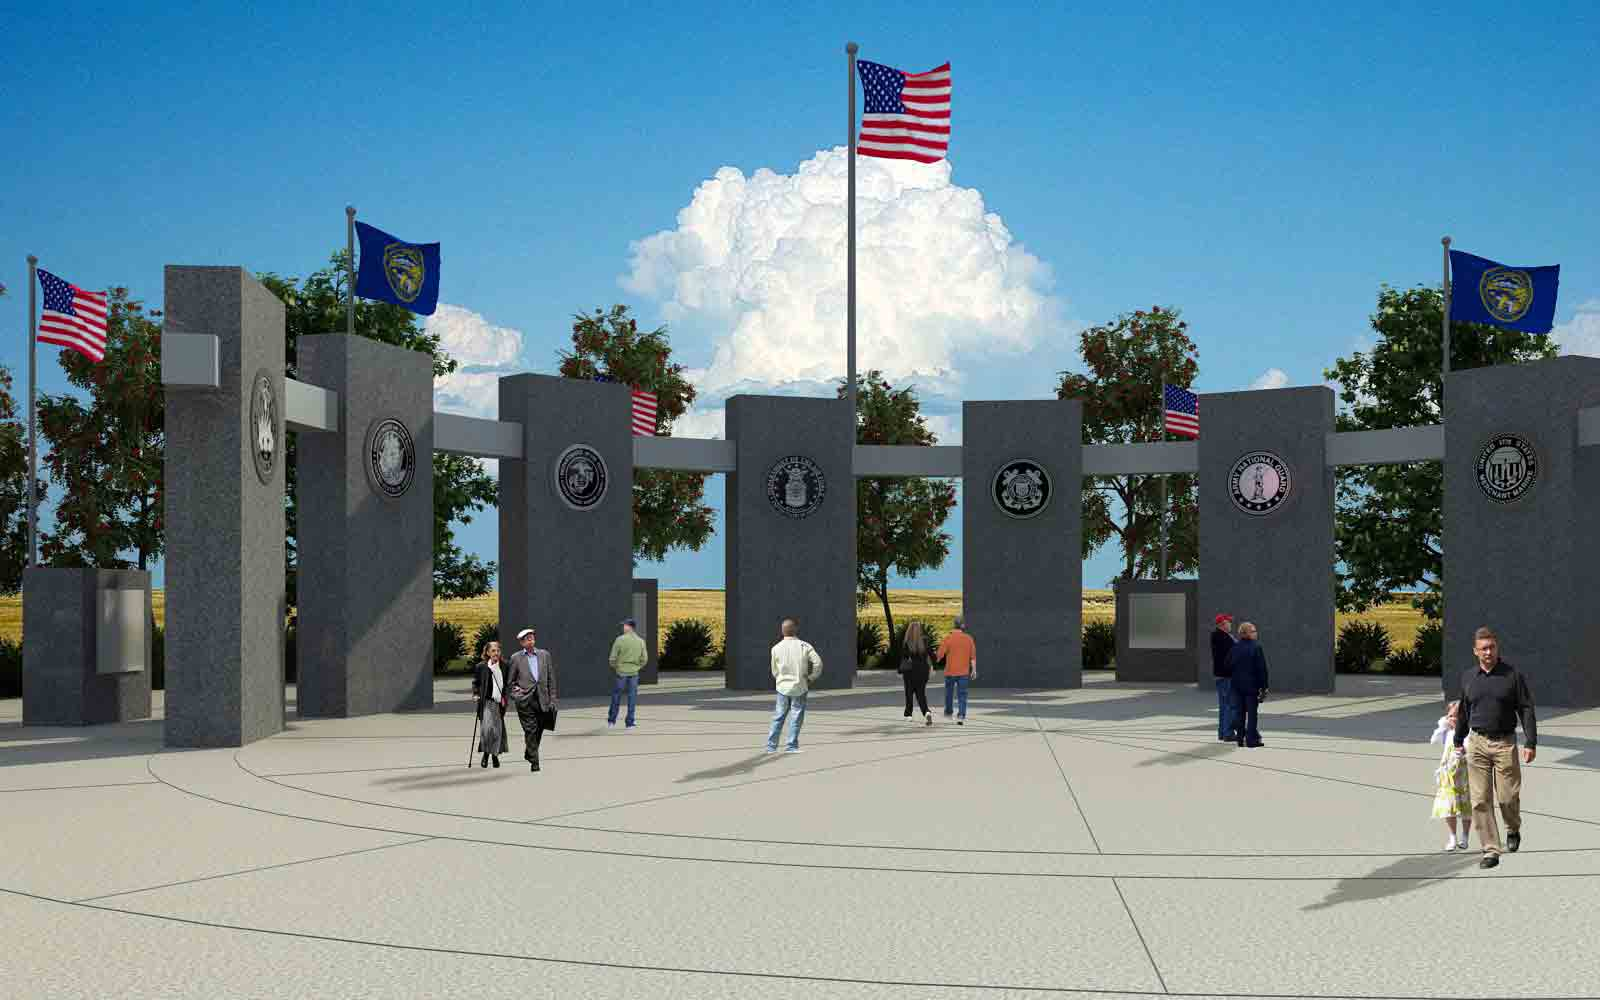 Central Nebraska Veteran's Memorial - Kearney, NE